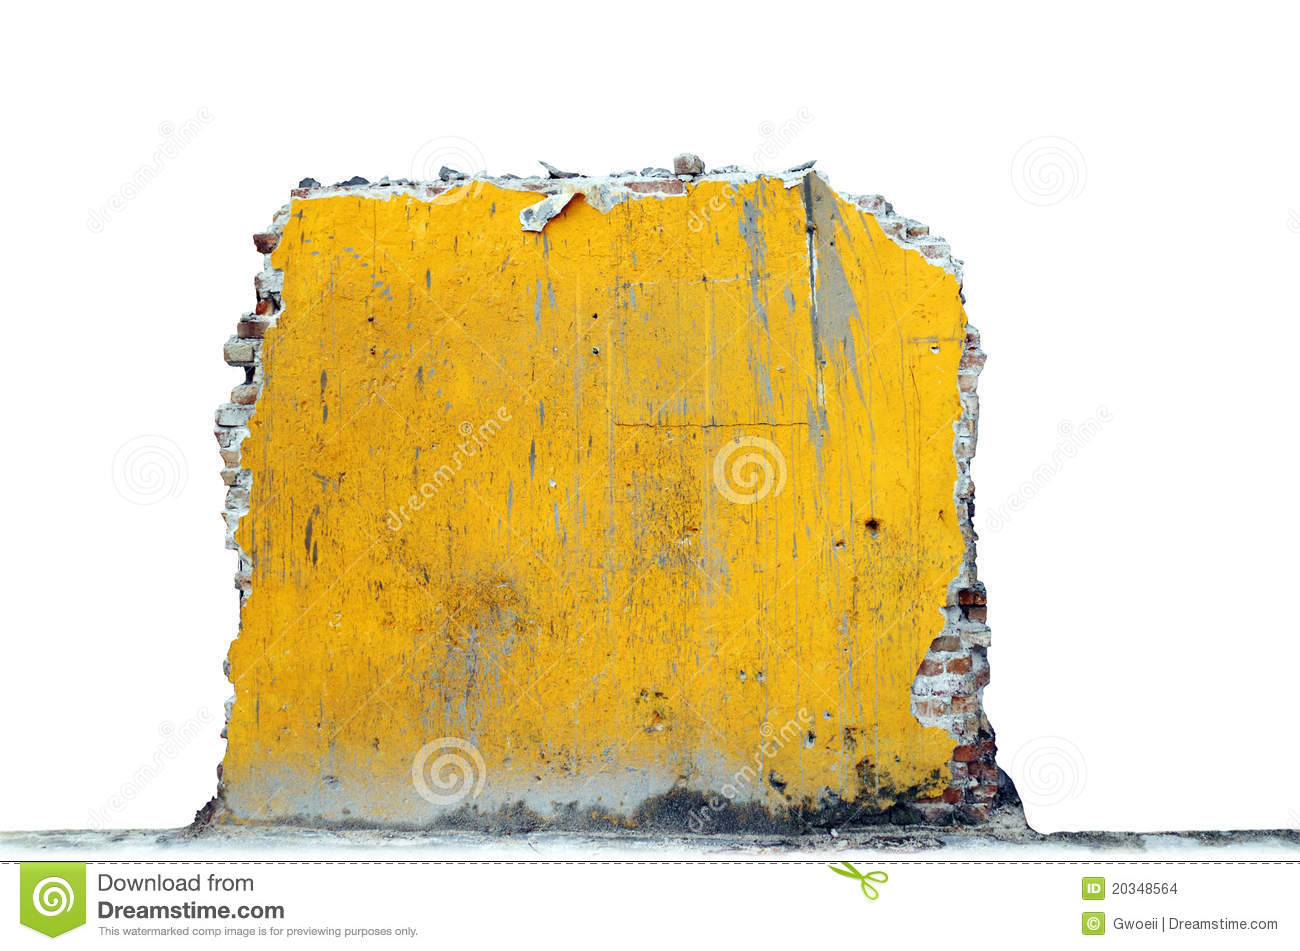 Yellow ruin and rubble.